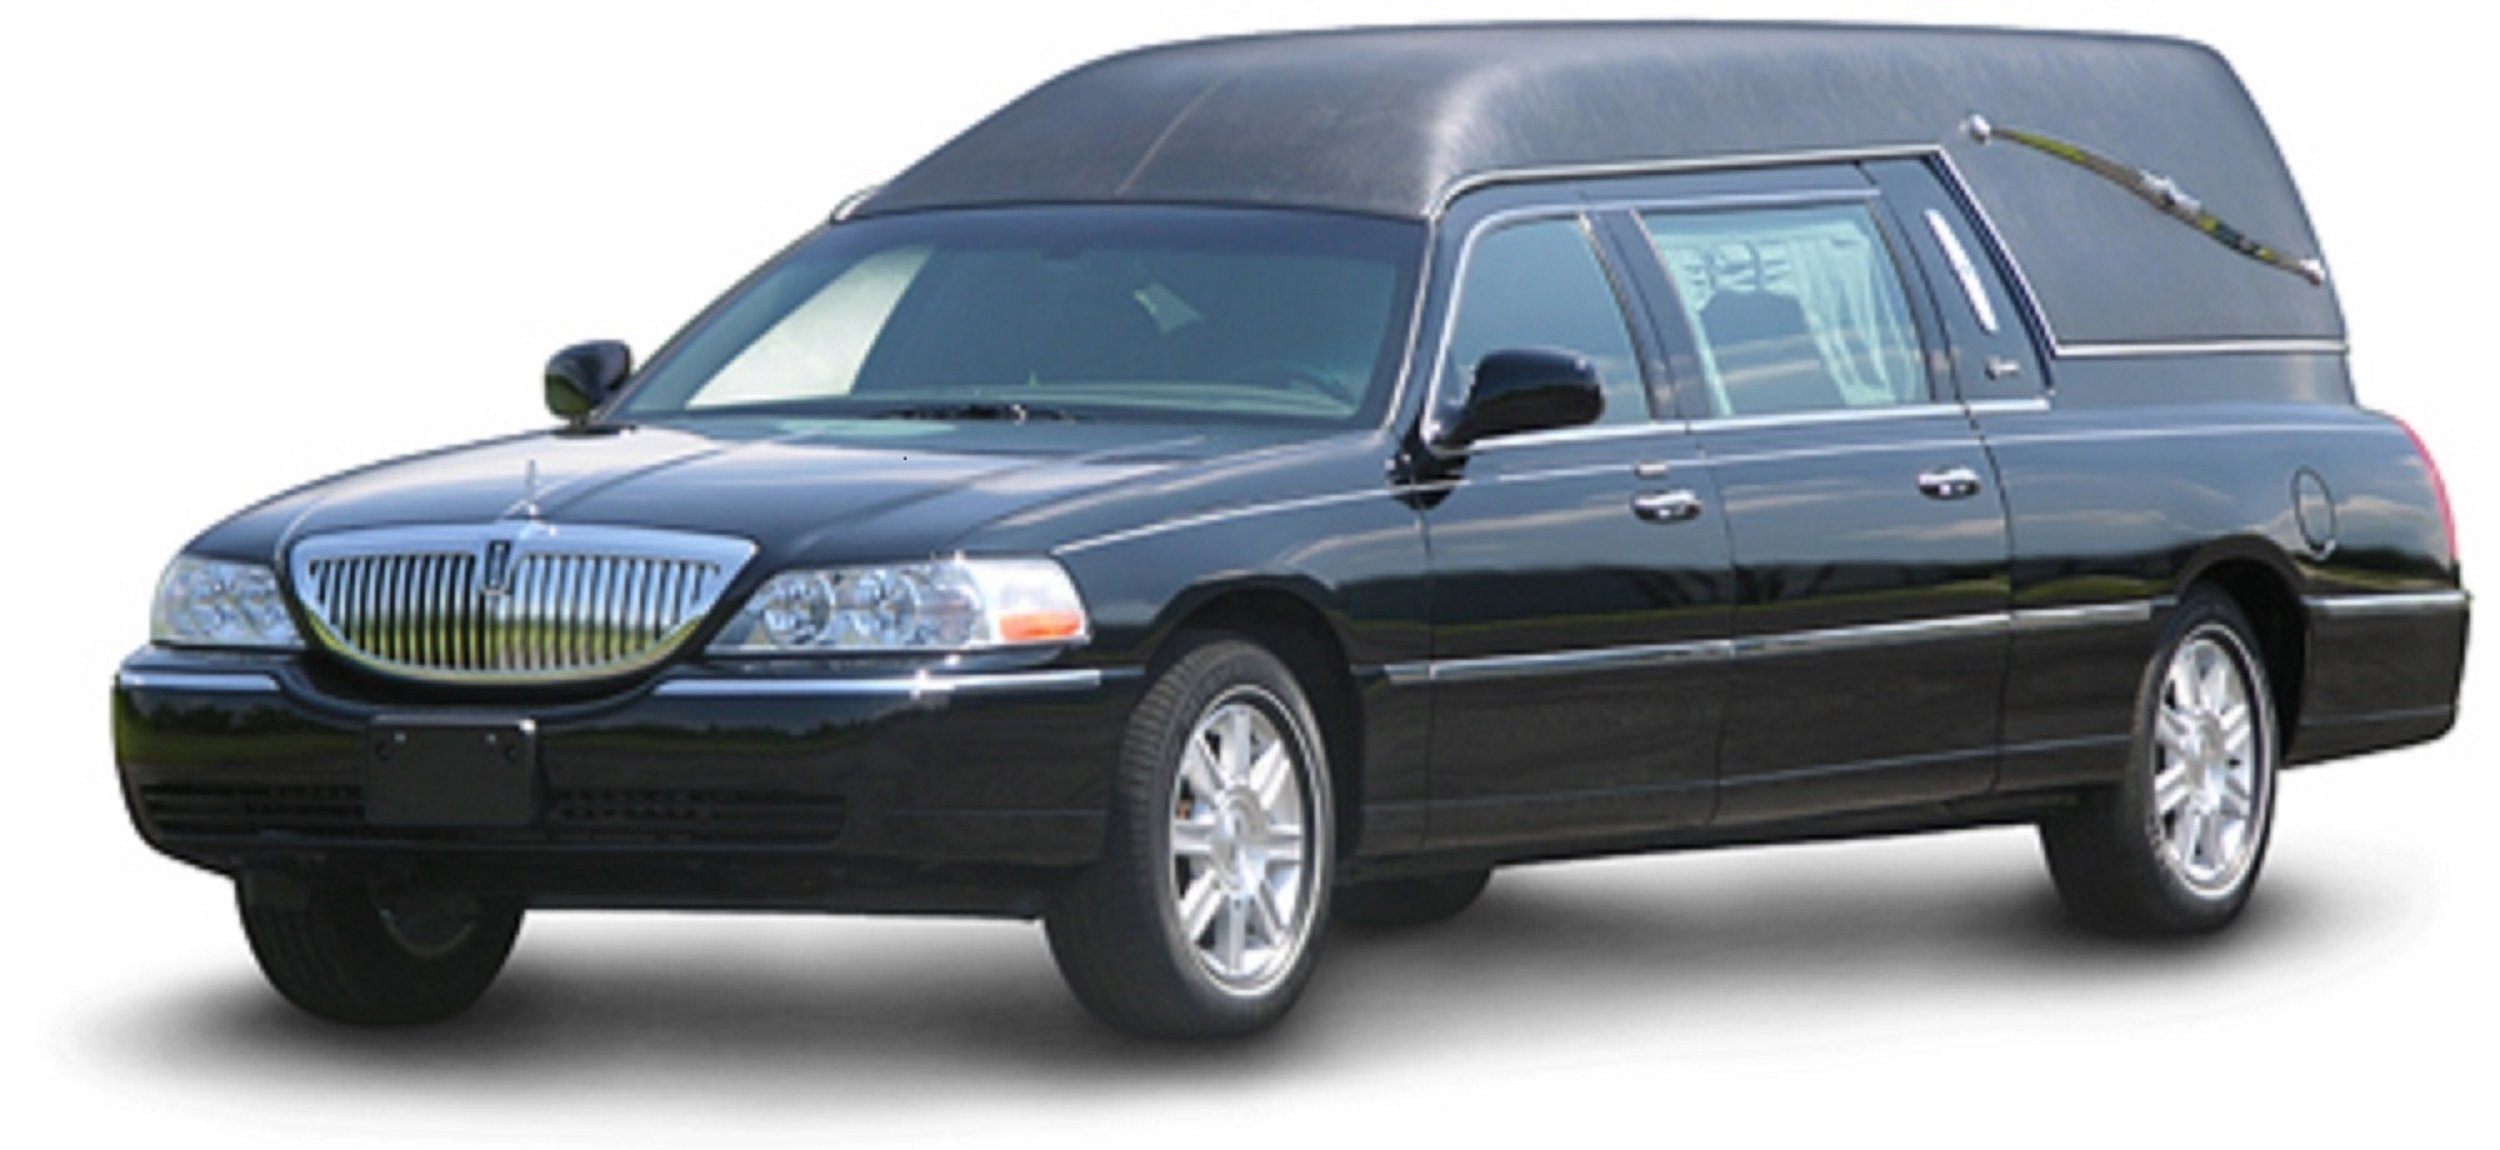 Lincoln Hearse Black 350dpi.jpg